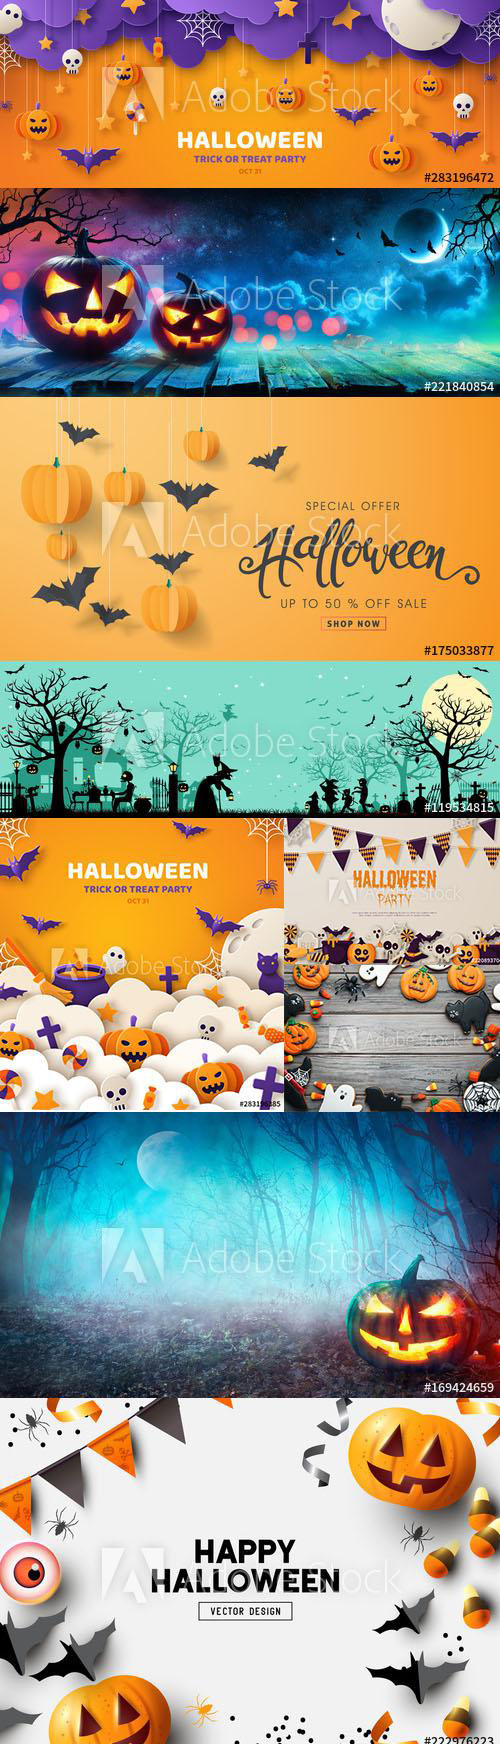 Happy Halloween Background and Elements set vol1